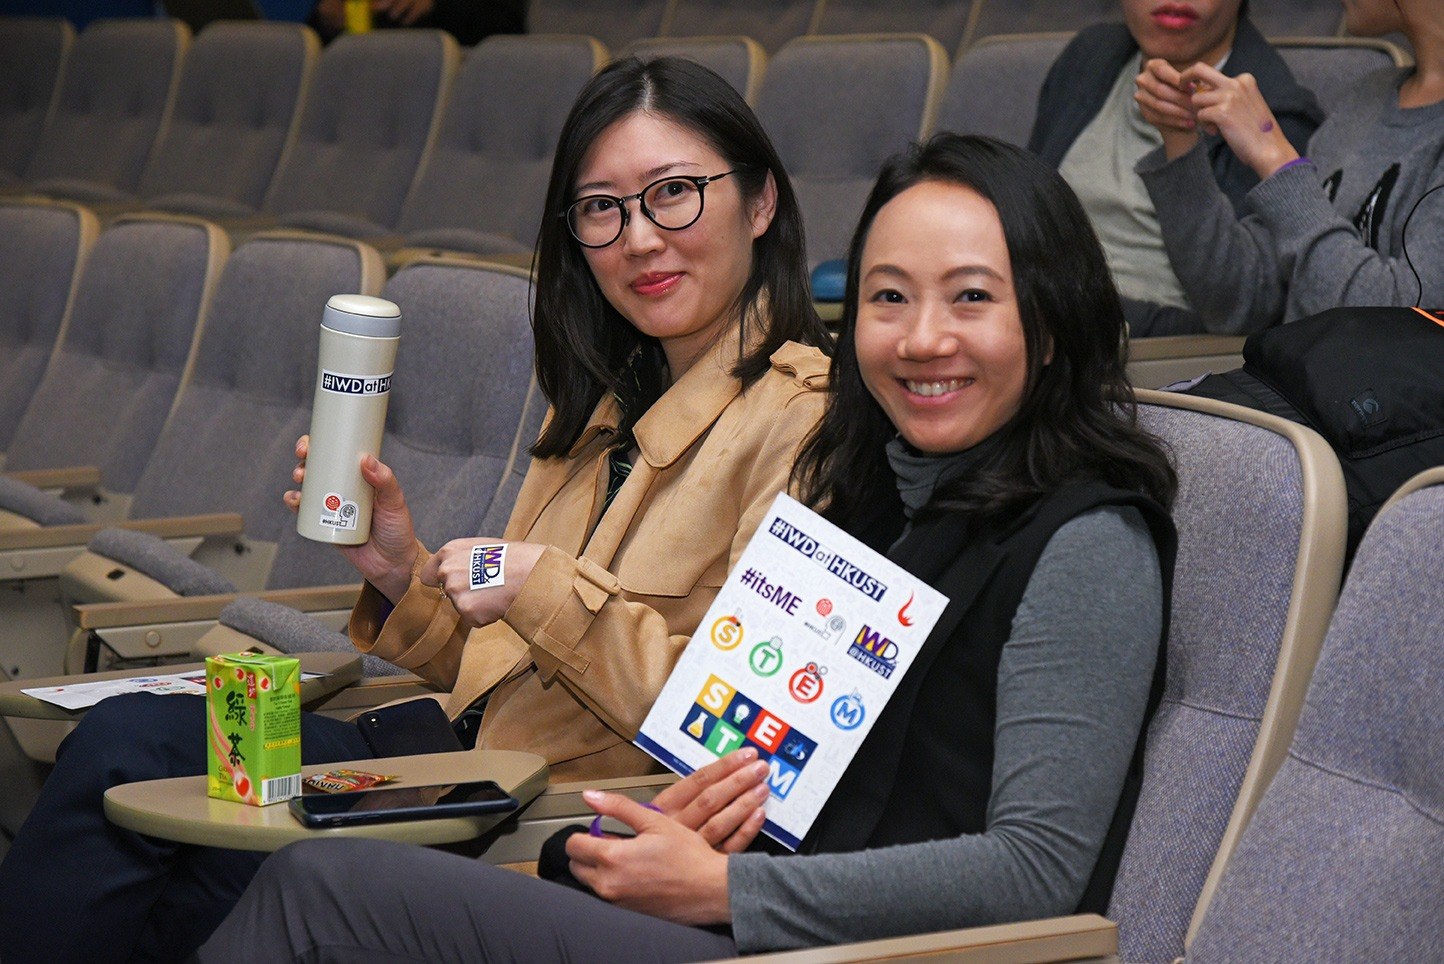 Two audiences holding IWD stickers and a bottle with stickers.